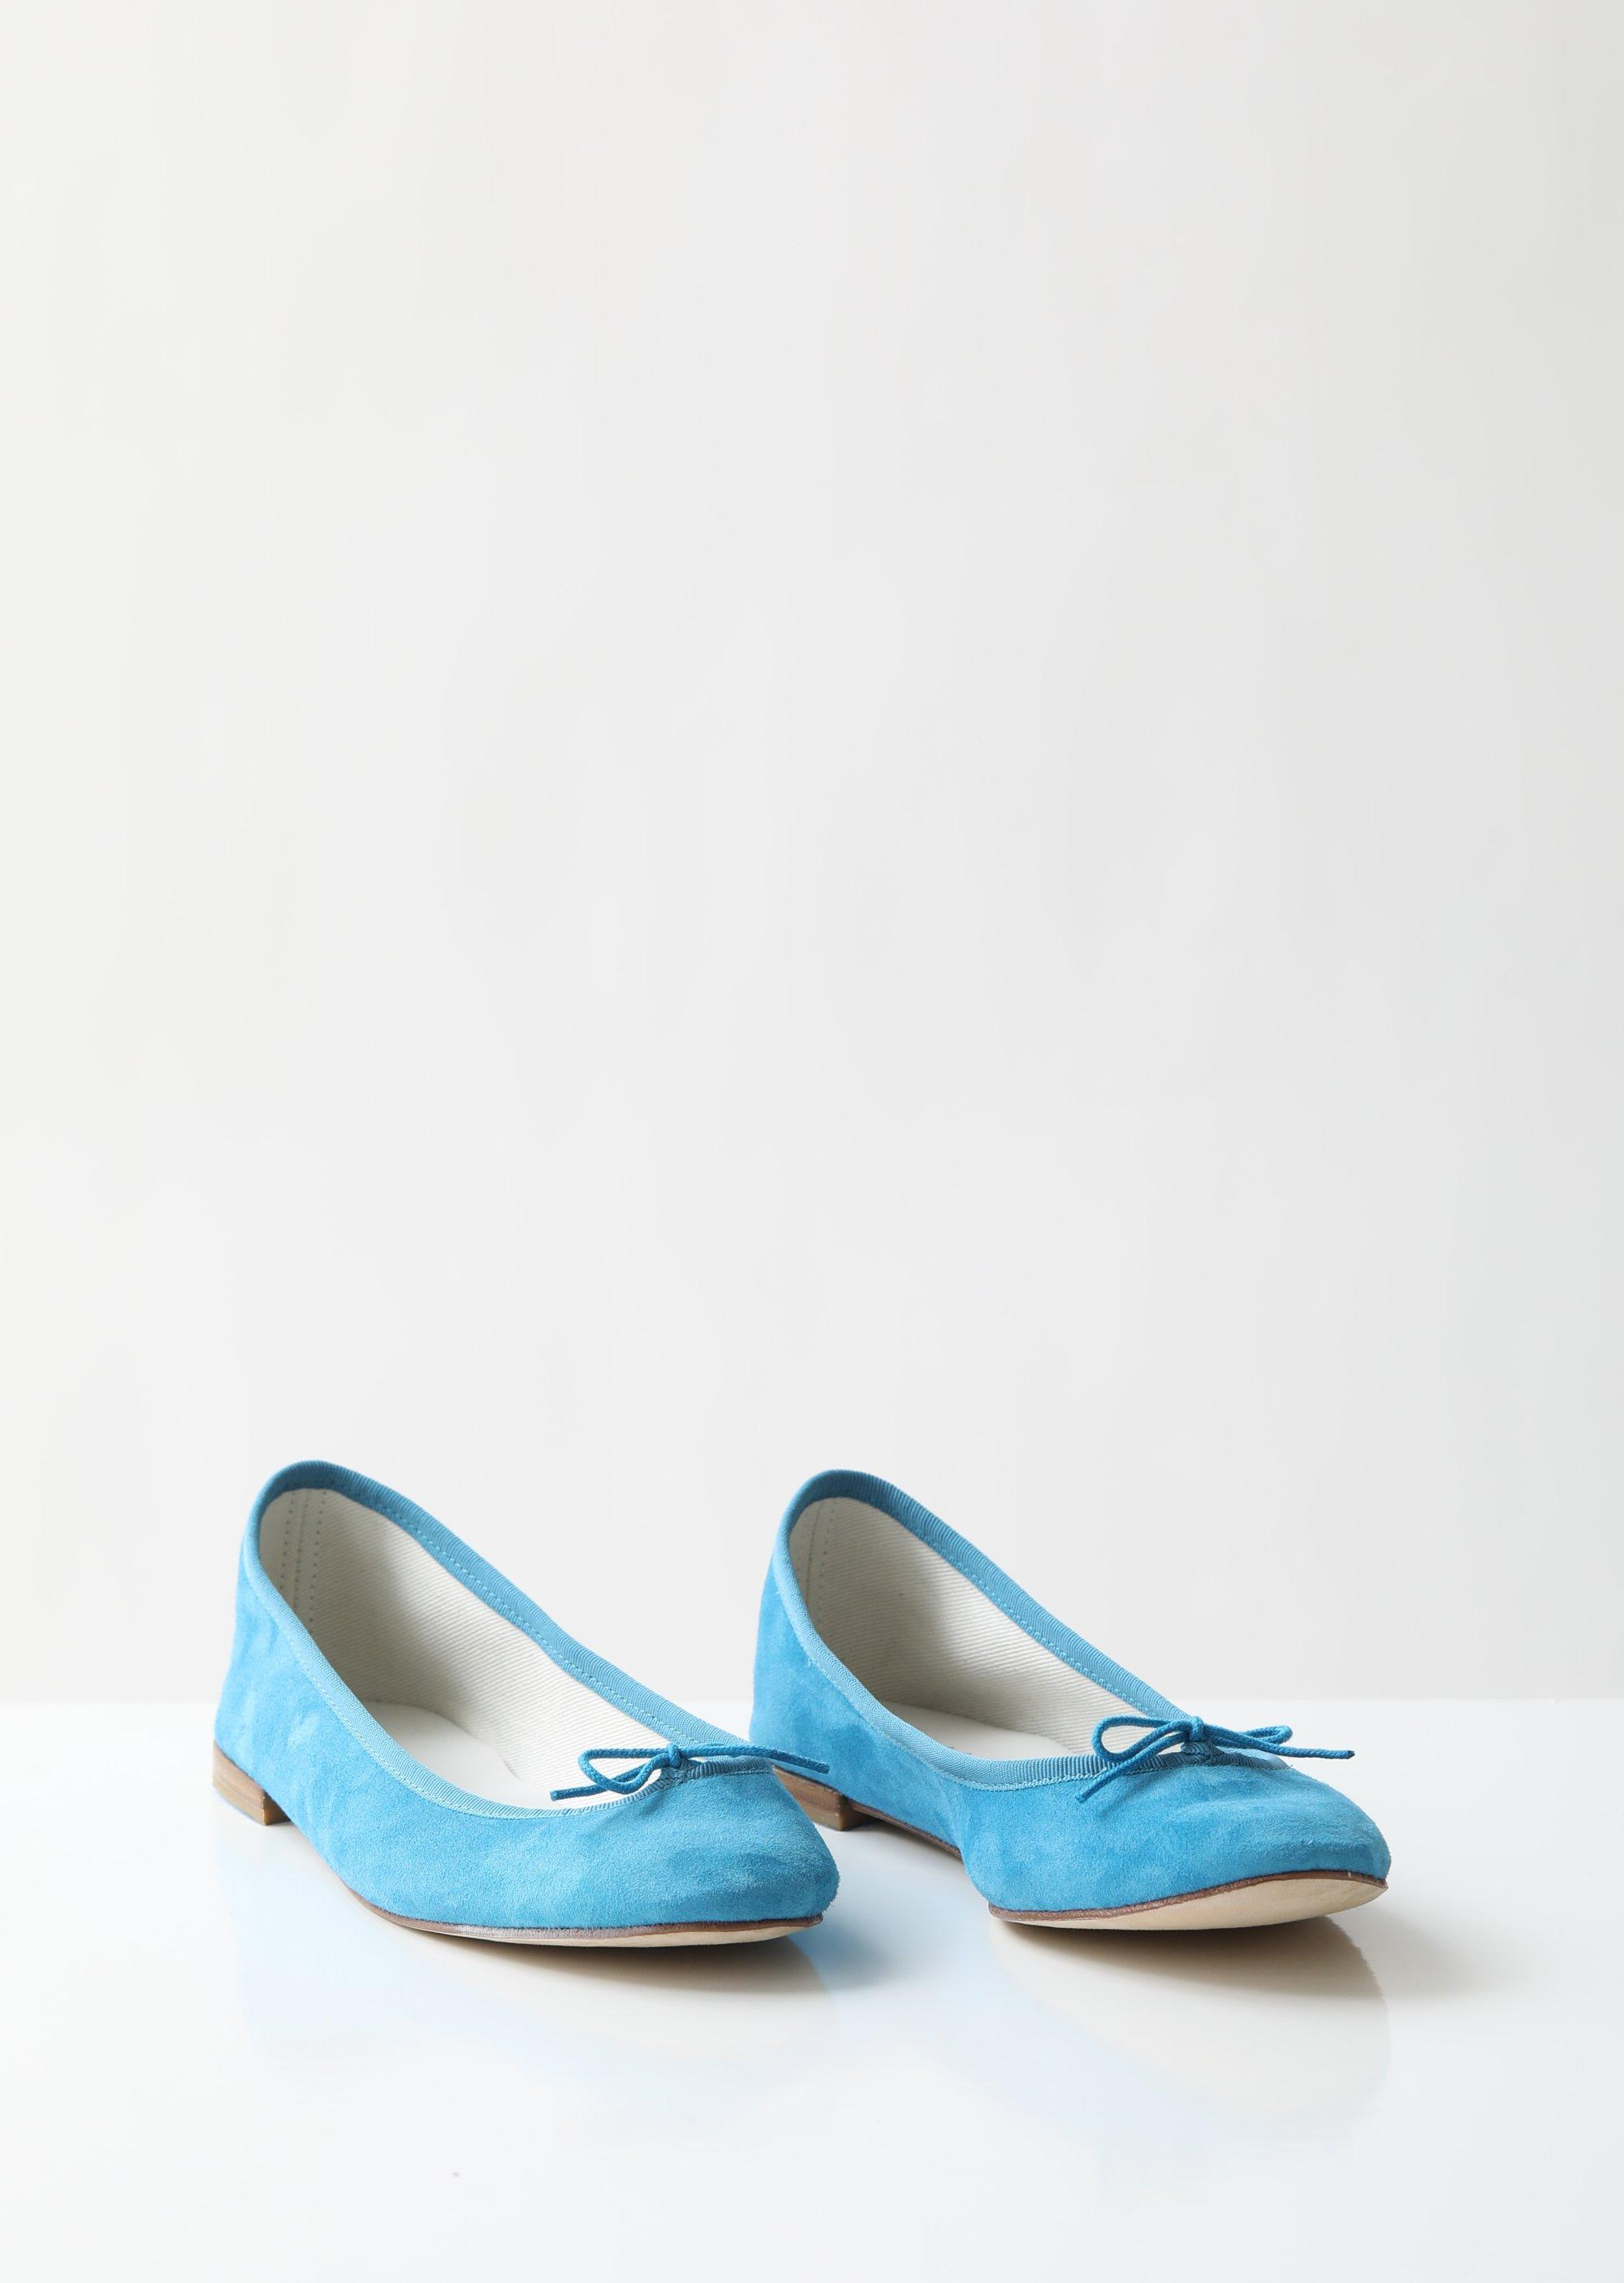 926343c1158d Repetto - Blue Cendrillon Ballerina Flats - Lyst. View fullscreen